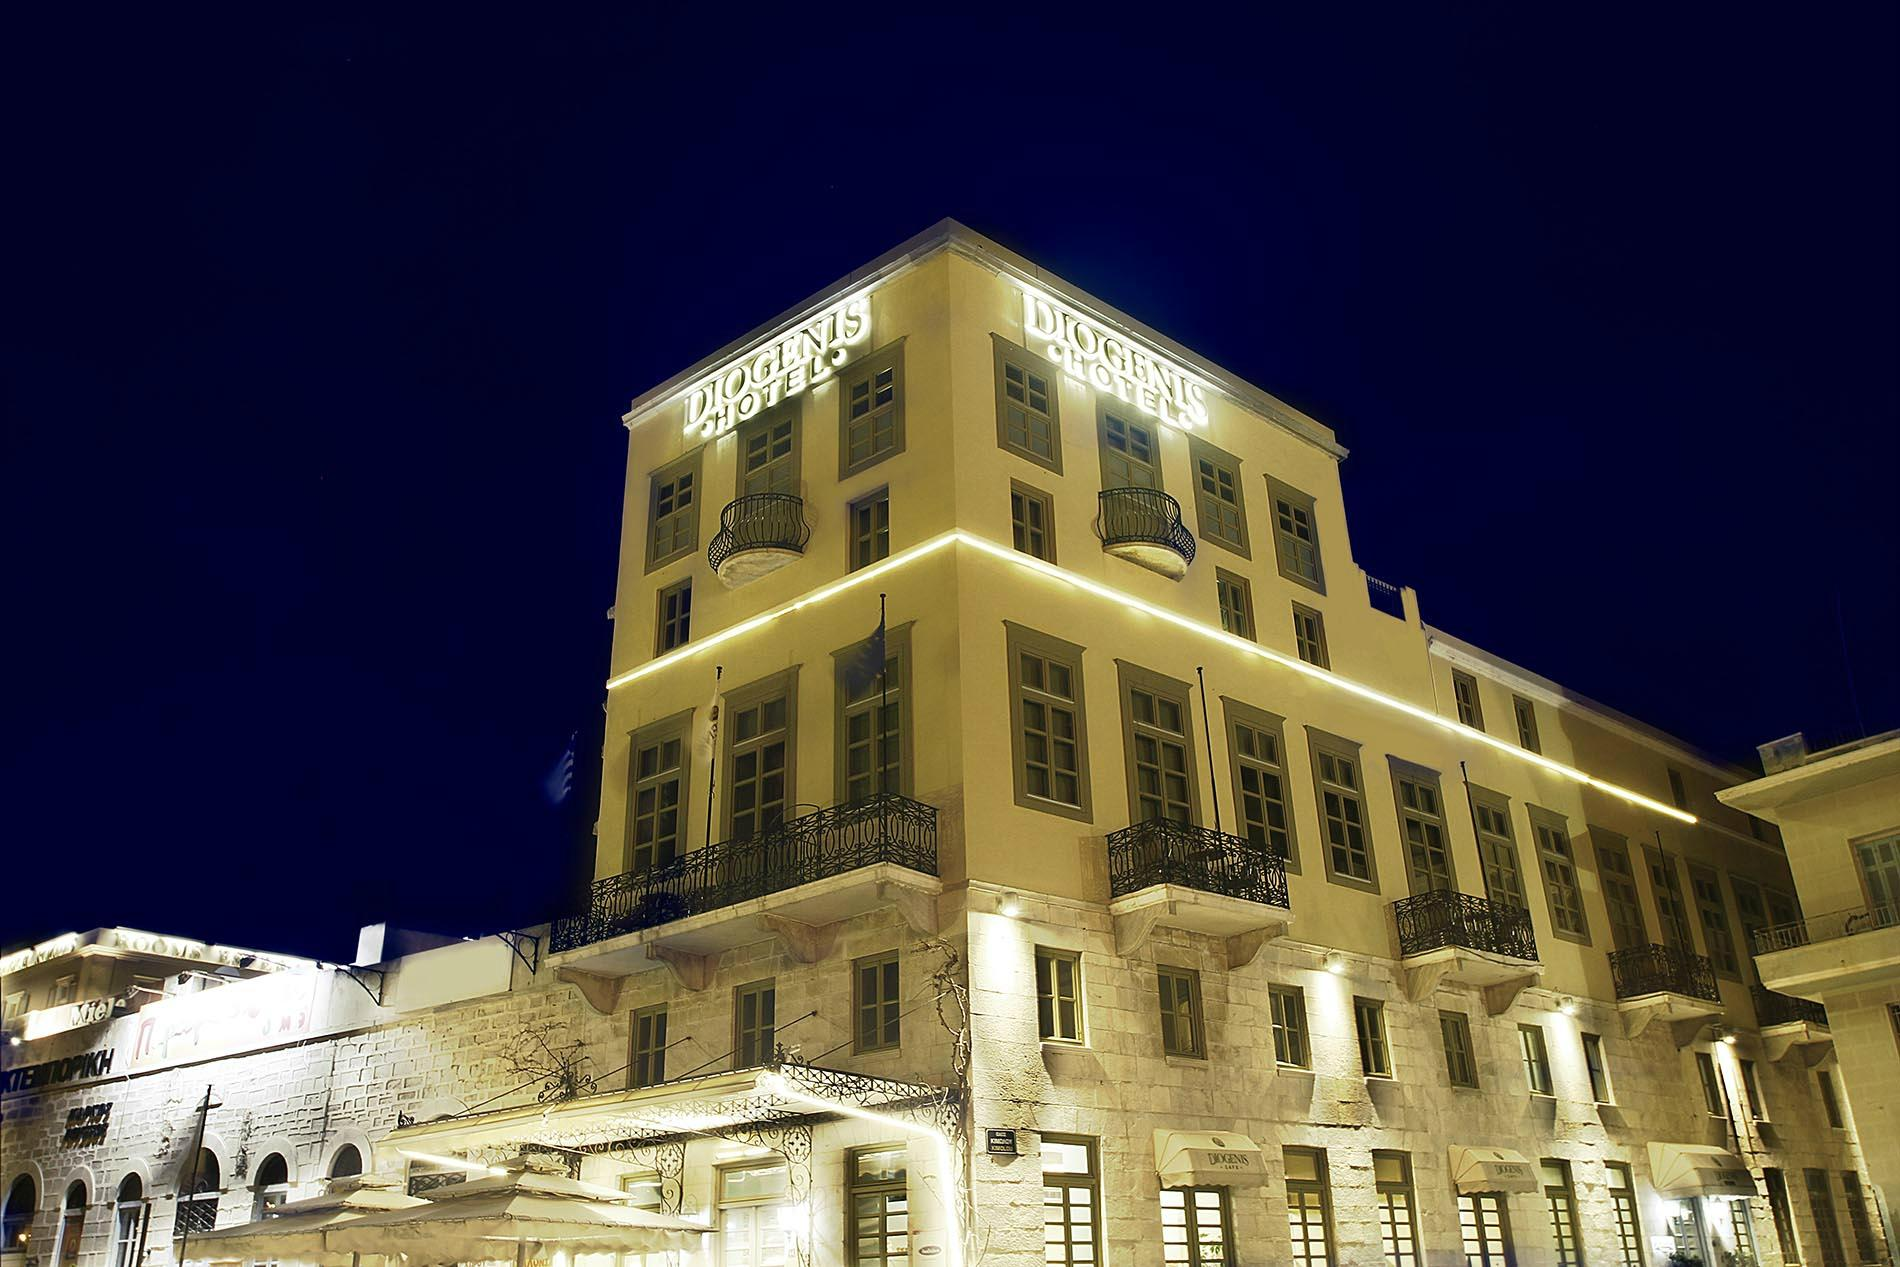 Diogenis Hotel